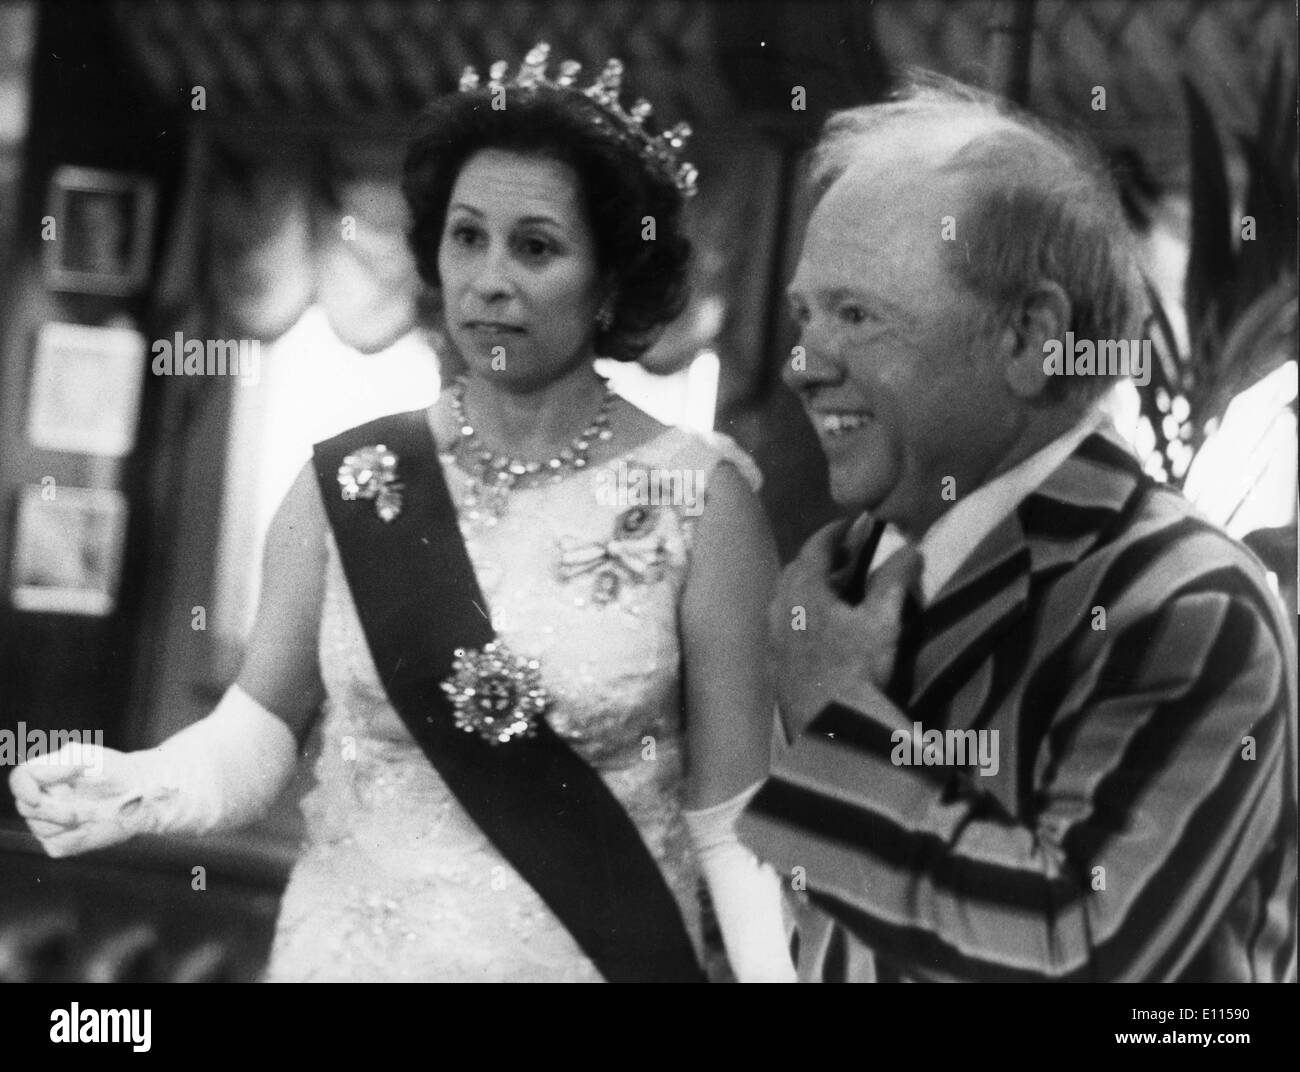 Actor Mickey Rooney visits with royalty Stock Photo